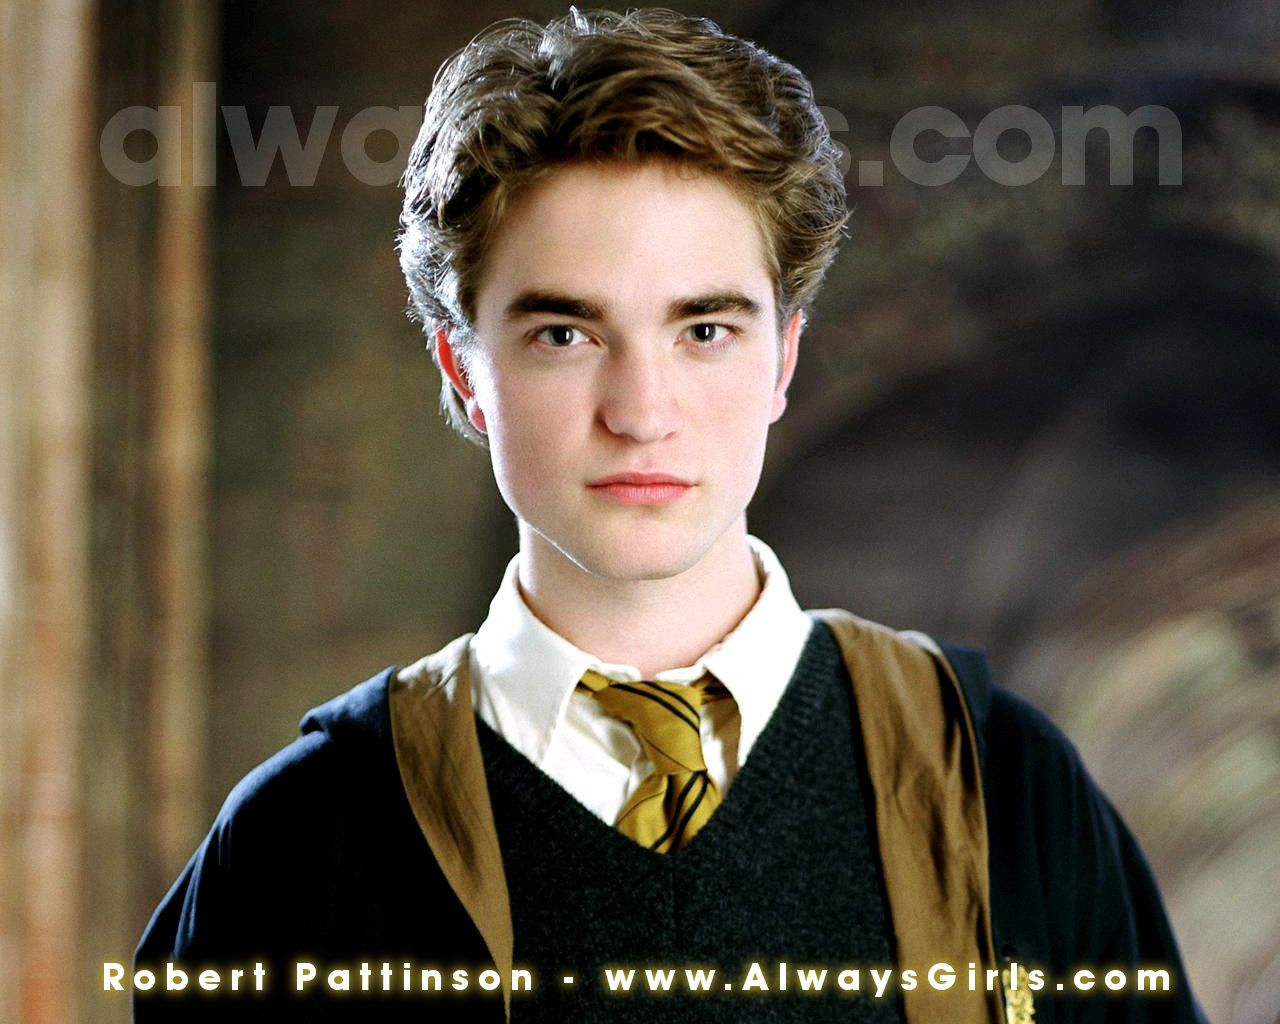 Rip Cedric But Hey If It Makes You Feel Any Better You Ll Become A Vampire That Sparkles Harry Potter Wiki Harry Potter Witch Harry Potter Characters